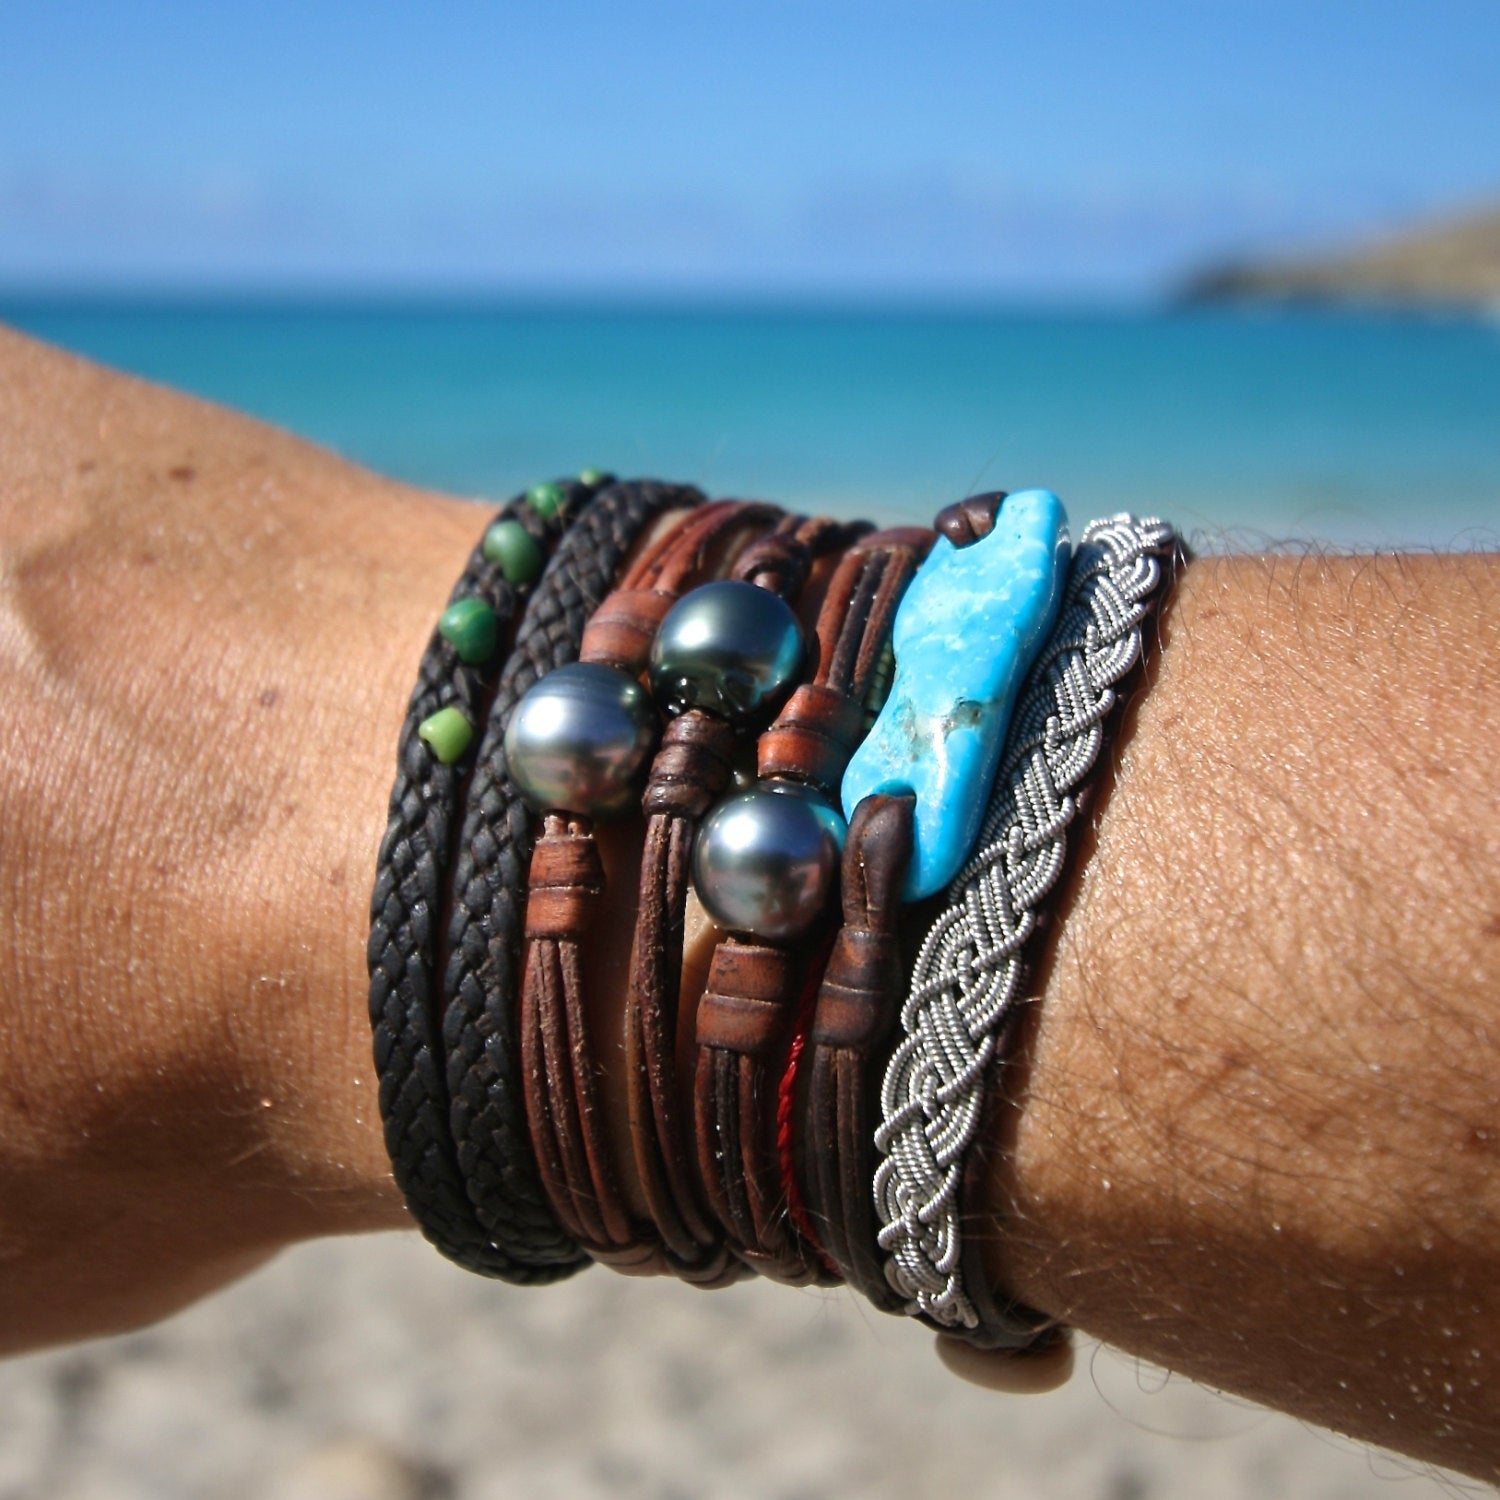 Single Tahitian pearl on leather, minimalist jewelry from St Barth, gypsea, St Barth island, boho and beach jewelry, bohemian style